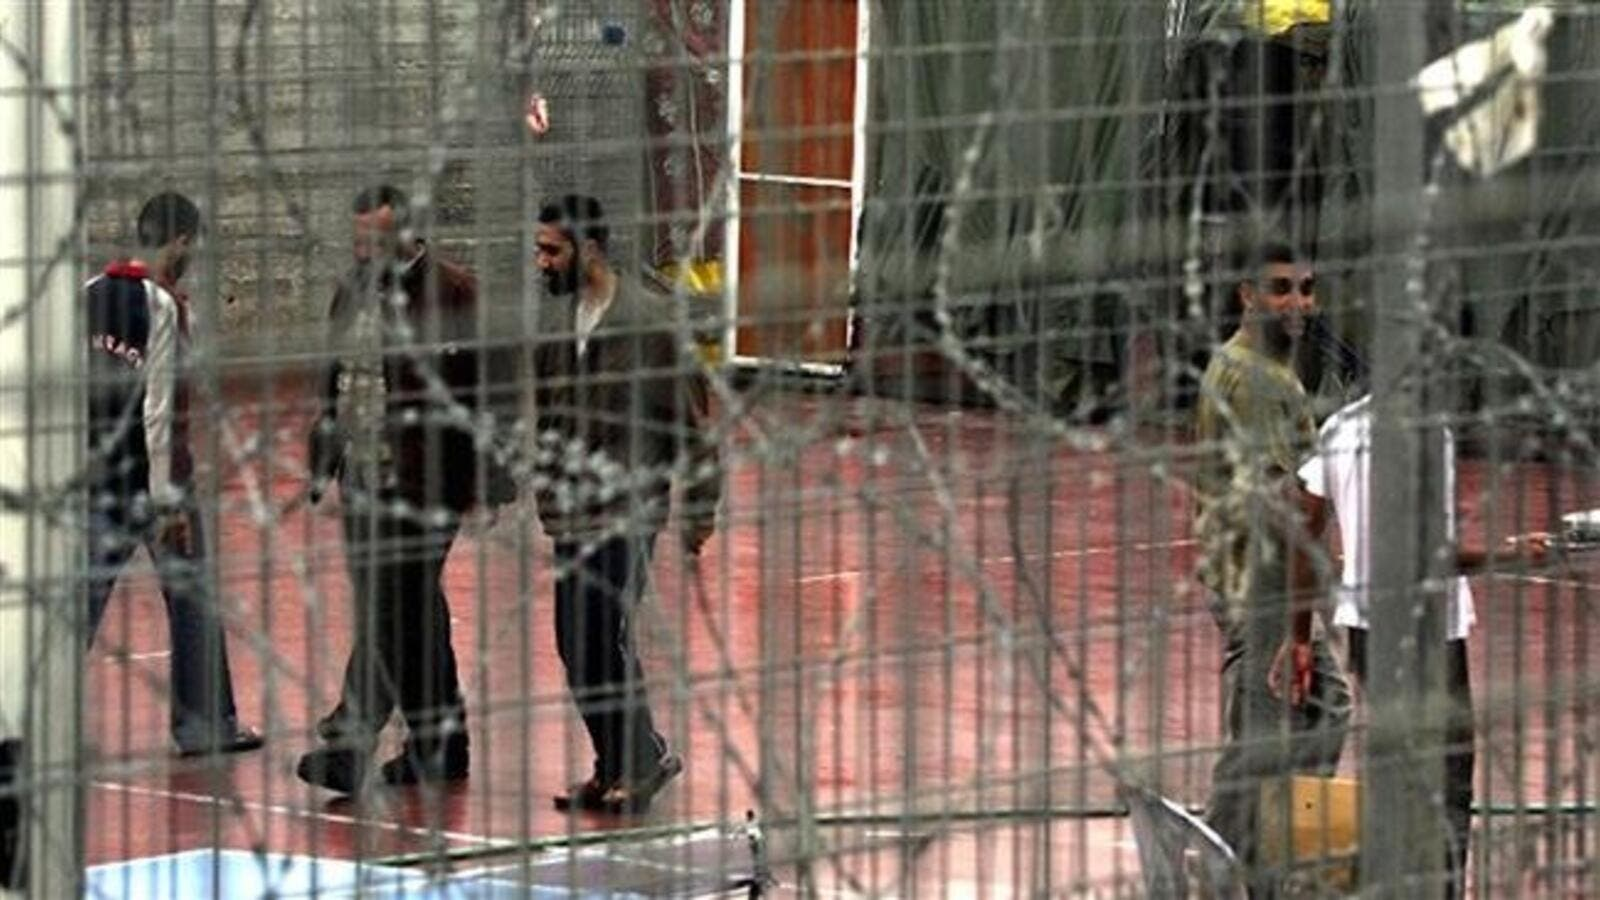 Palestinian prisoners in the yard of Israel's Megiddo prison. (AFP/ File Photo)